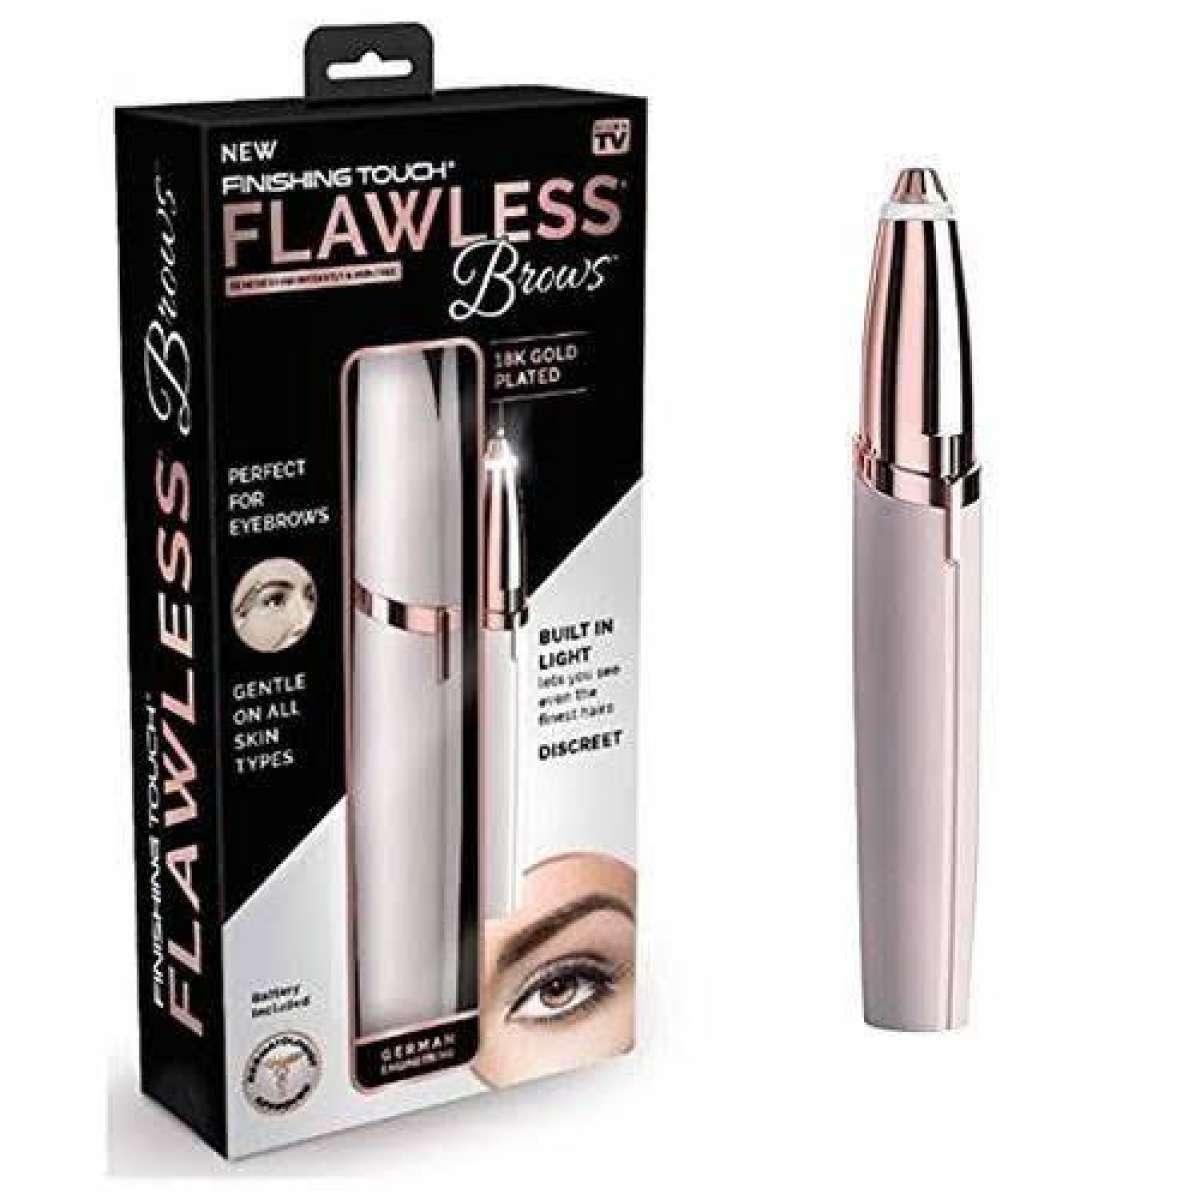 Finishing Touch Flawless Brows Eyebrow Hair Remover With 18k Gold Plated Buy Online At Best Prices In Pakistan Daraz Pk